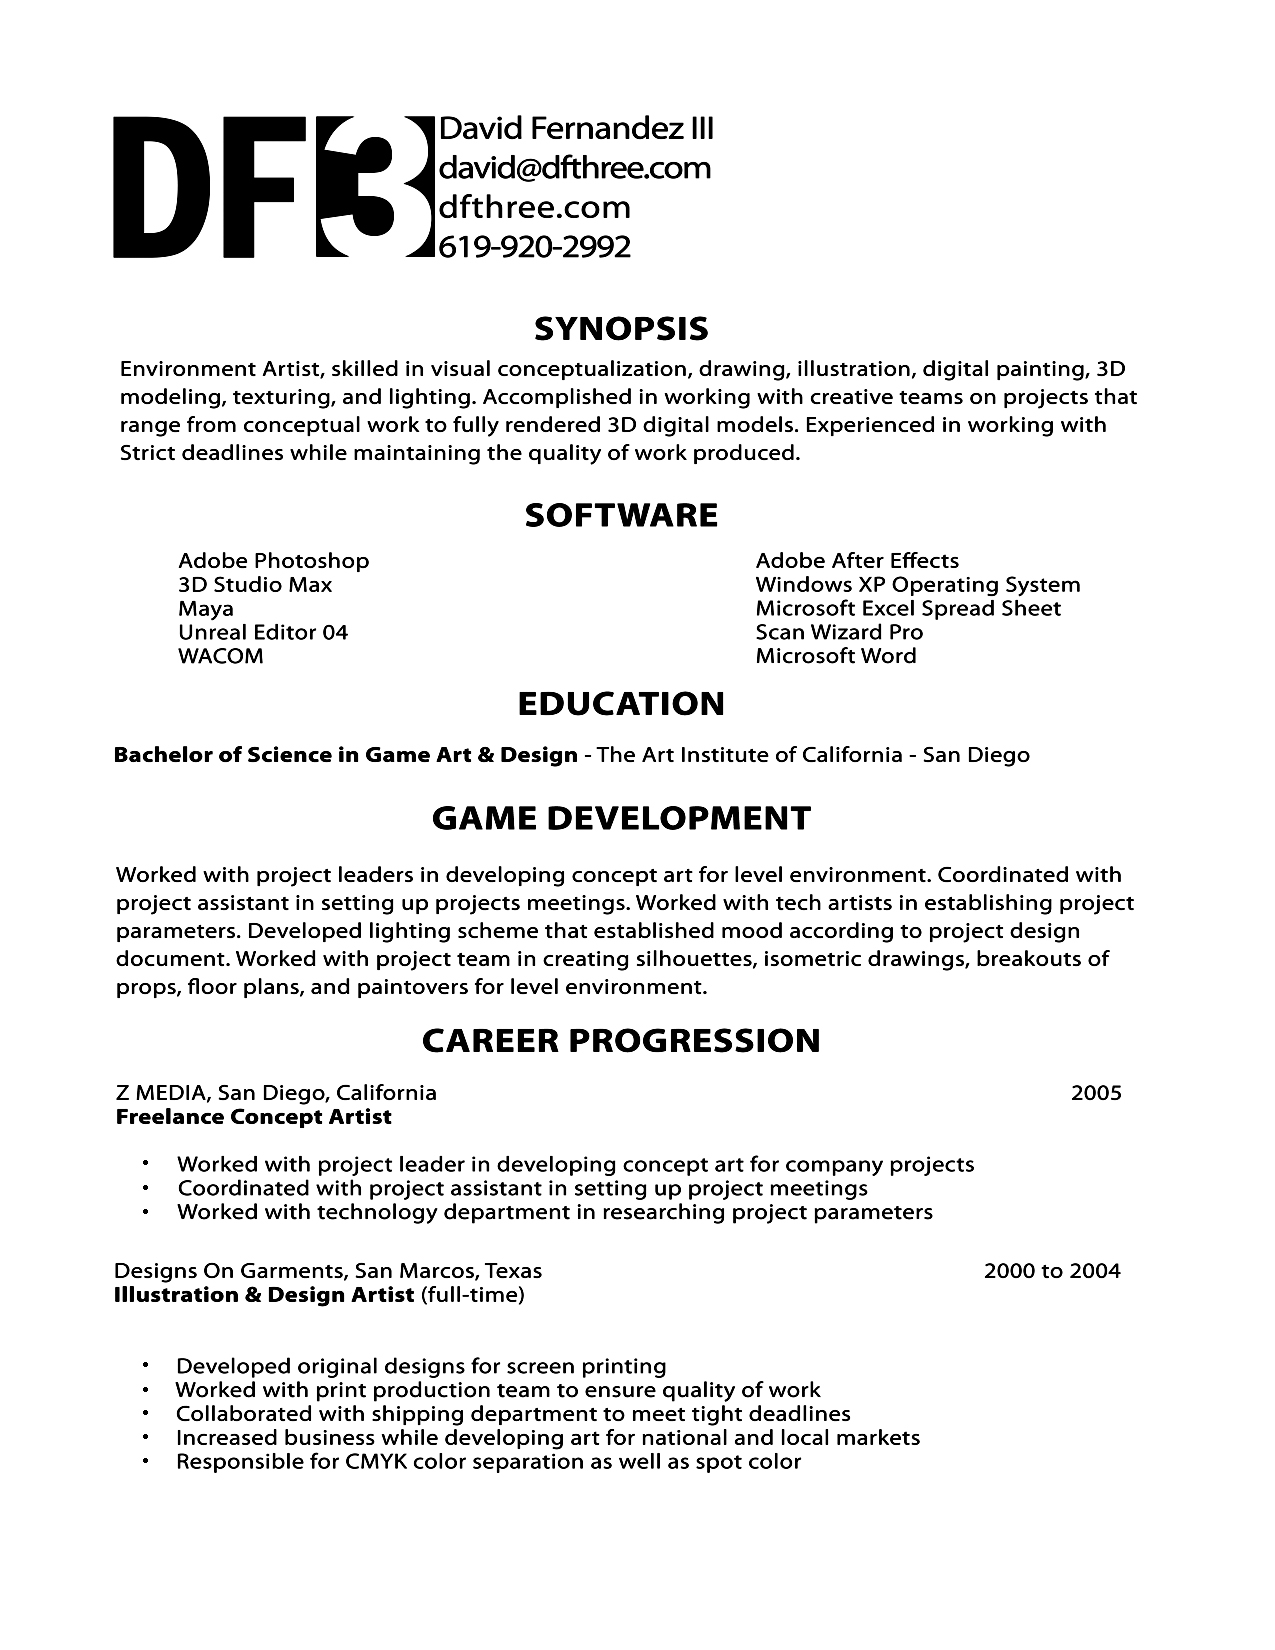 Opposenewapstandardsus  Sweet Game Developer Resume Game Tester Resume Sample Game Tester  With Outstanding Better Jobs Faster With Appealing Federal Resume Samples Also How To Make A Resume For A Job Application In Addition Mobile Resume Builder And Follow Up Letter After Resume As Well As Insurance Agent Resume Sample Additionally Skills List Resume From Kelseymarieco With Opposenewapstandardsus  Outstanding Game Developer Resume Game Tester Resume Sample Game Tester  With Appealing Better Jobs Faster And Sweet Federal Resume Samples Also How To Make A Resume For A Job Application In Addition Mobile Resume Builder From Kelseymarieco